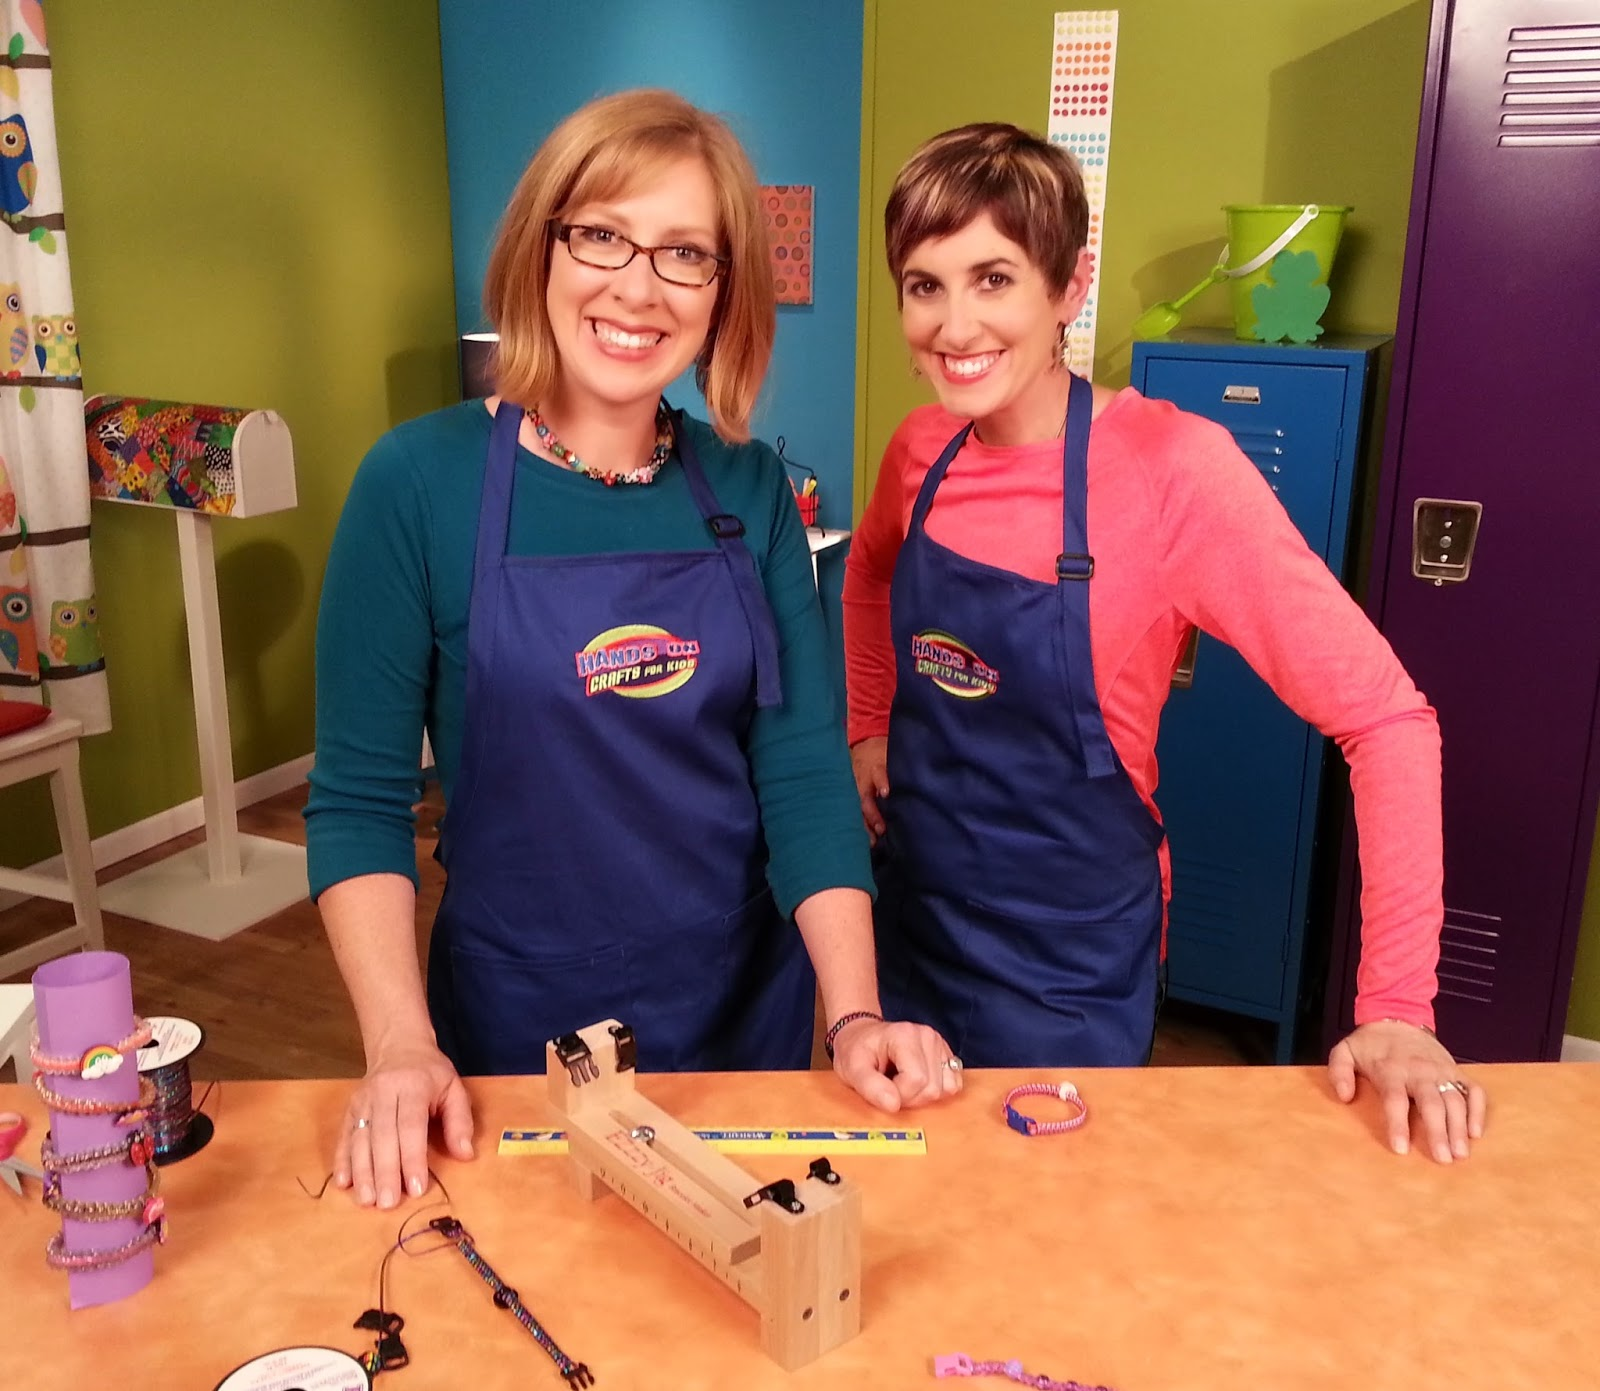 Katie Hacker & Candie Cooper making bracelets - Photo courtesy of Hands On Crafts